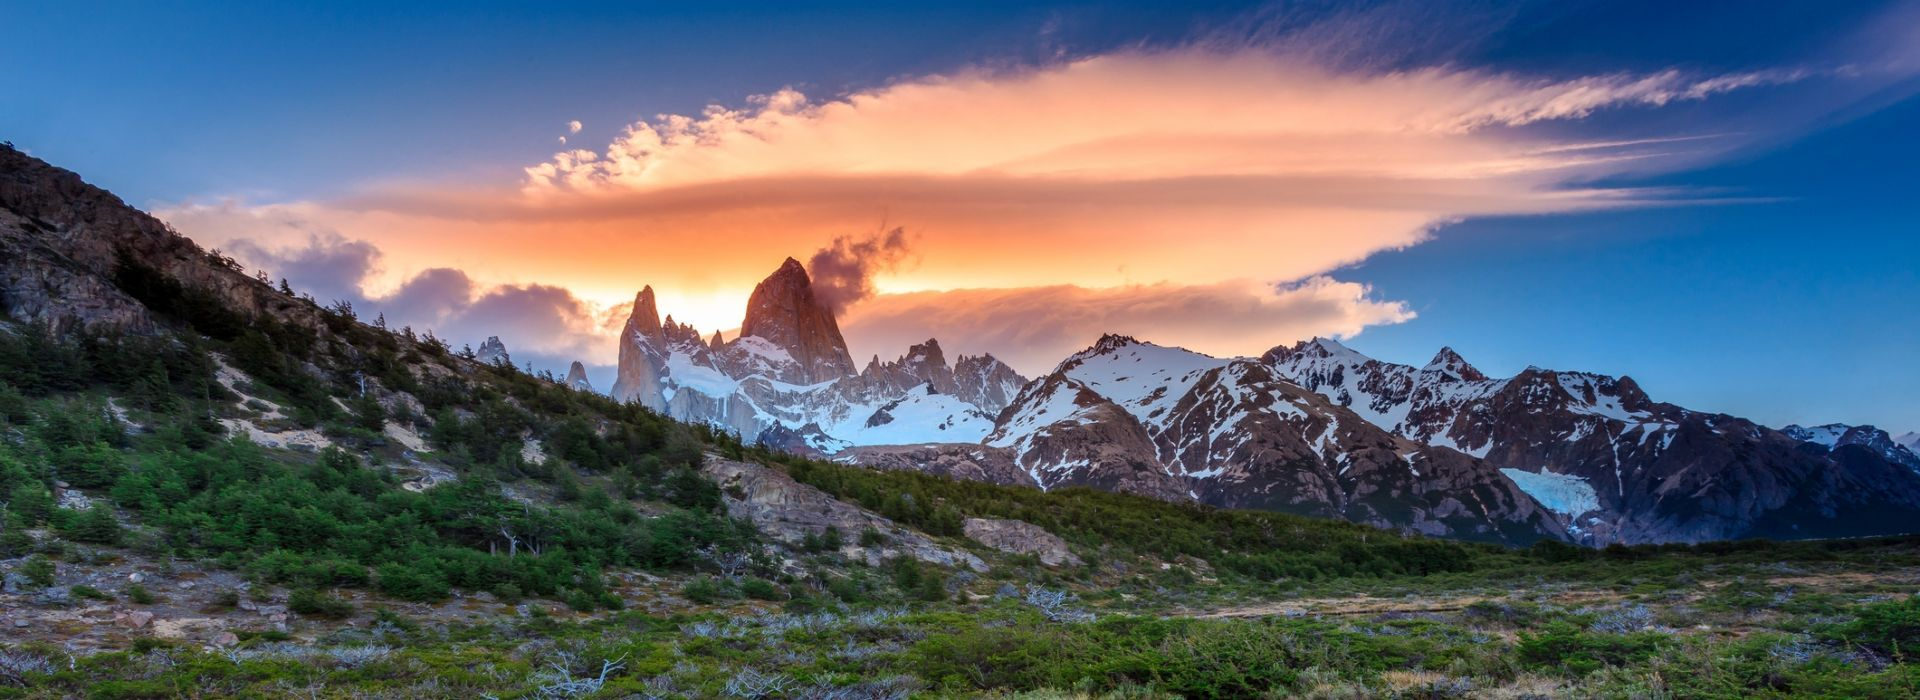 Sightseeing, attractions, culture and history Tours in El Chalten